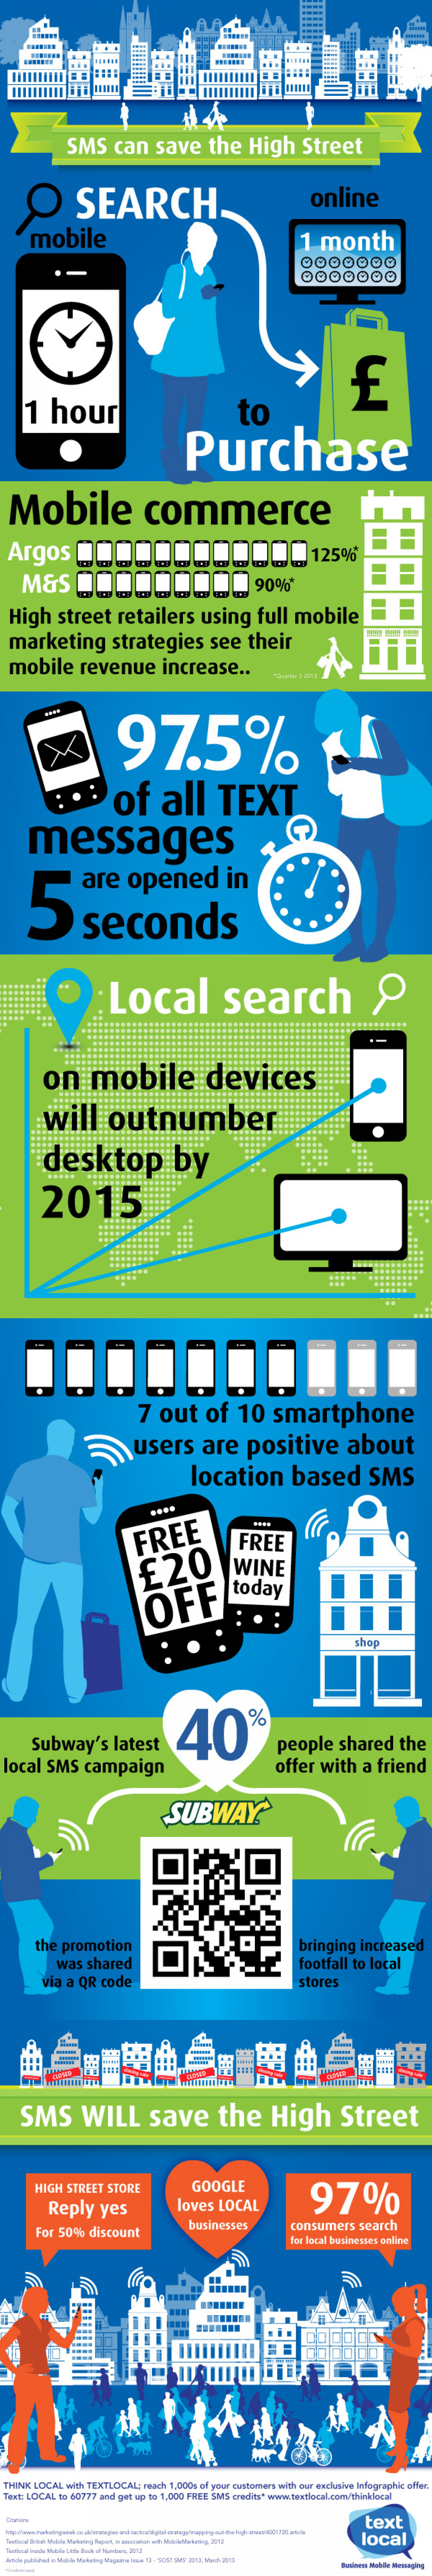 SMS Messaging can Save the High Street Infographic